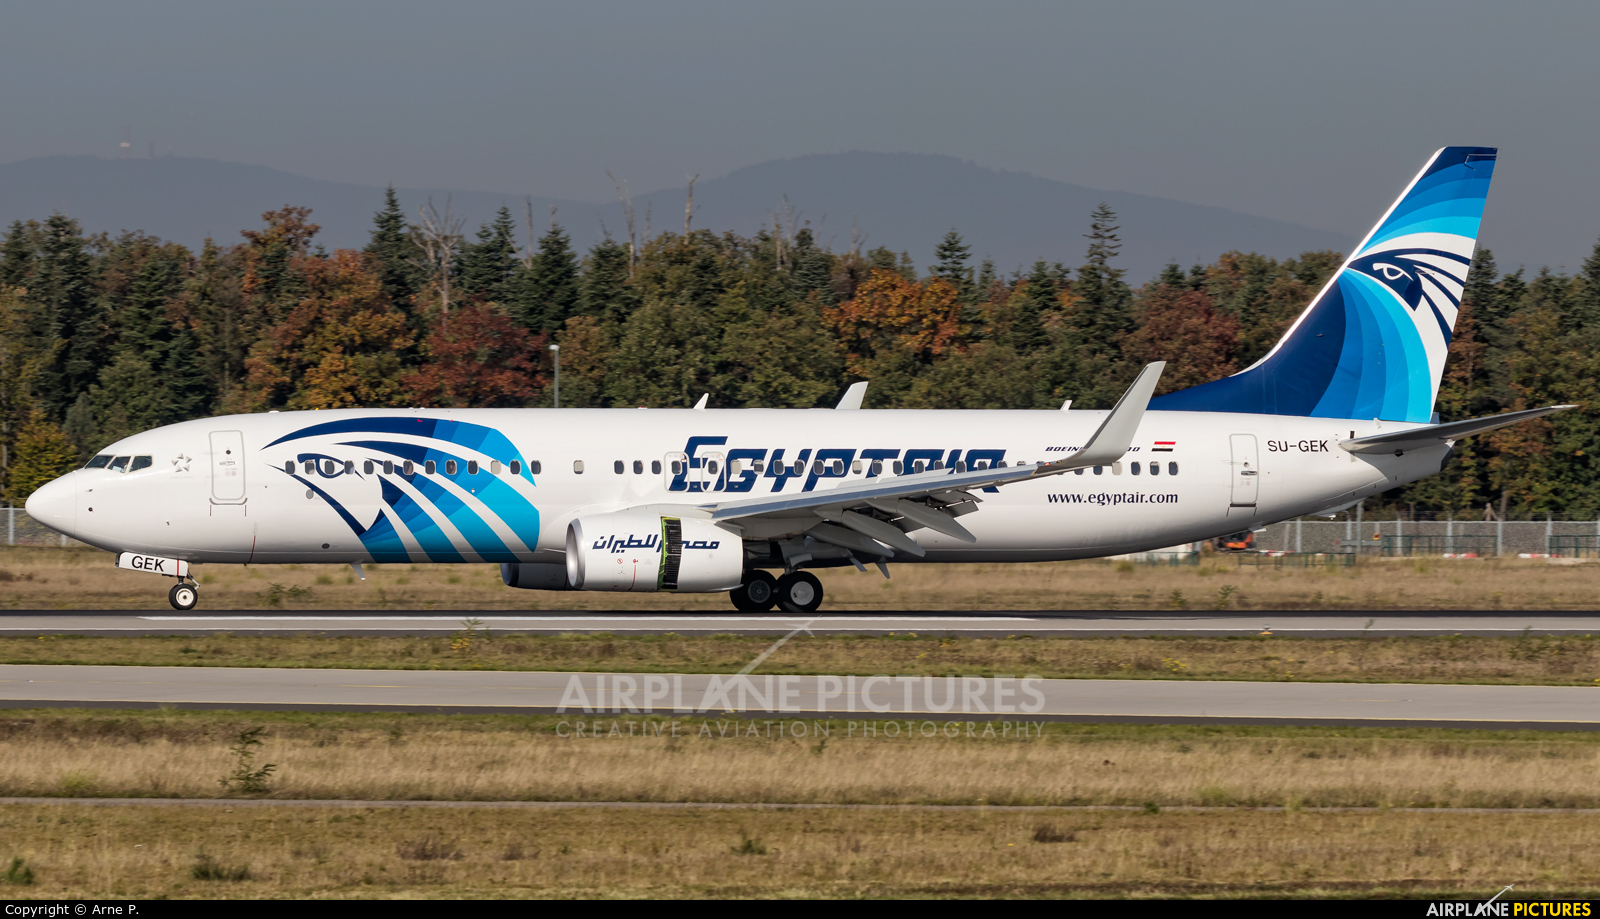 Egyptair SU-GEK aircraft at Frankfurt